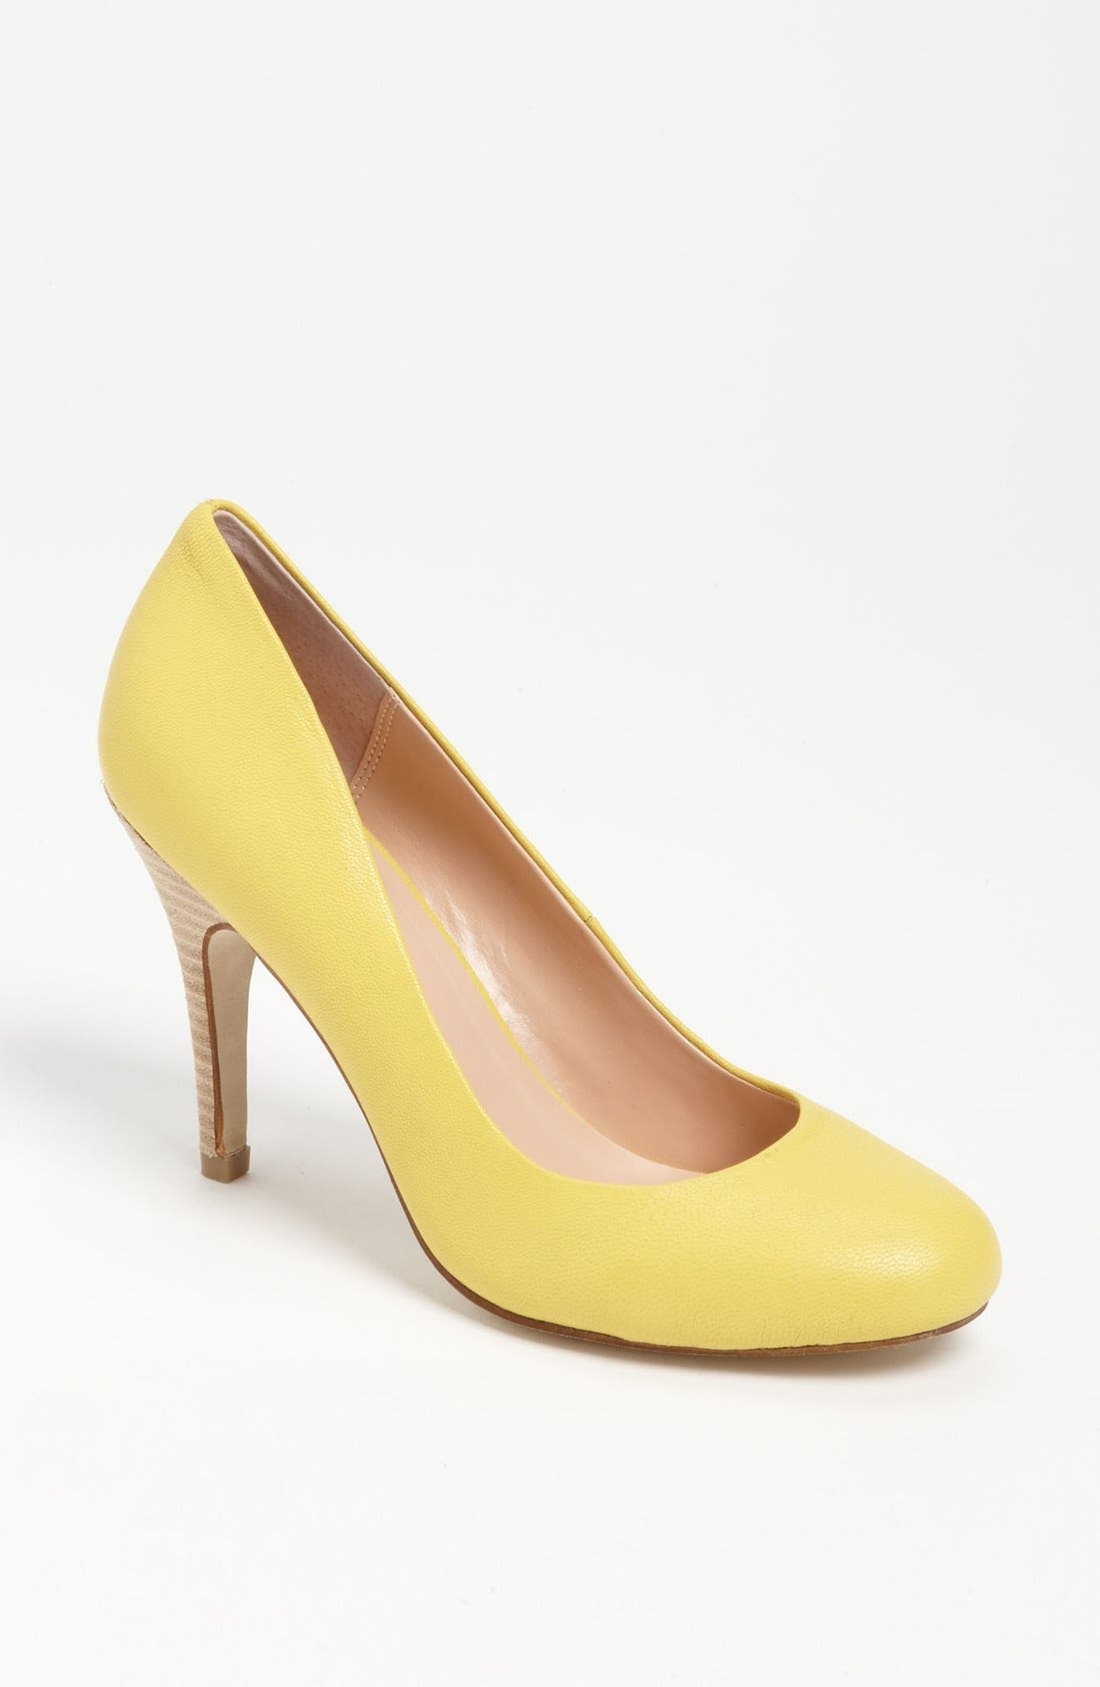 Alternate Image 1 Selected - Sole Society 'Marina' Pump